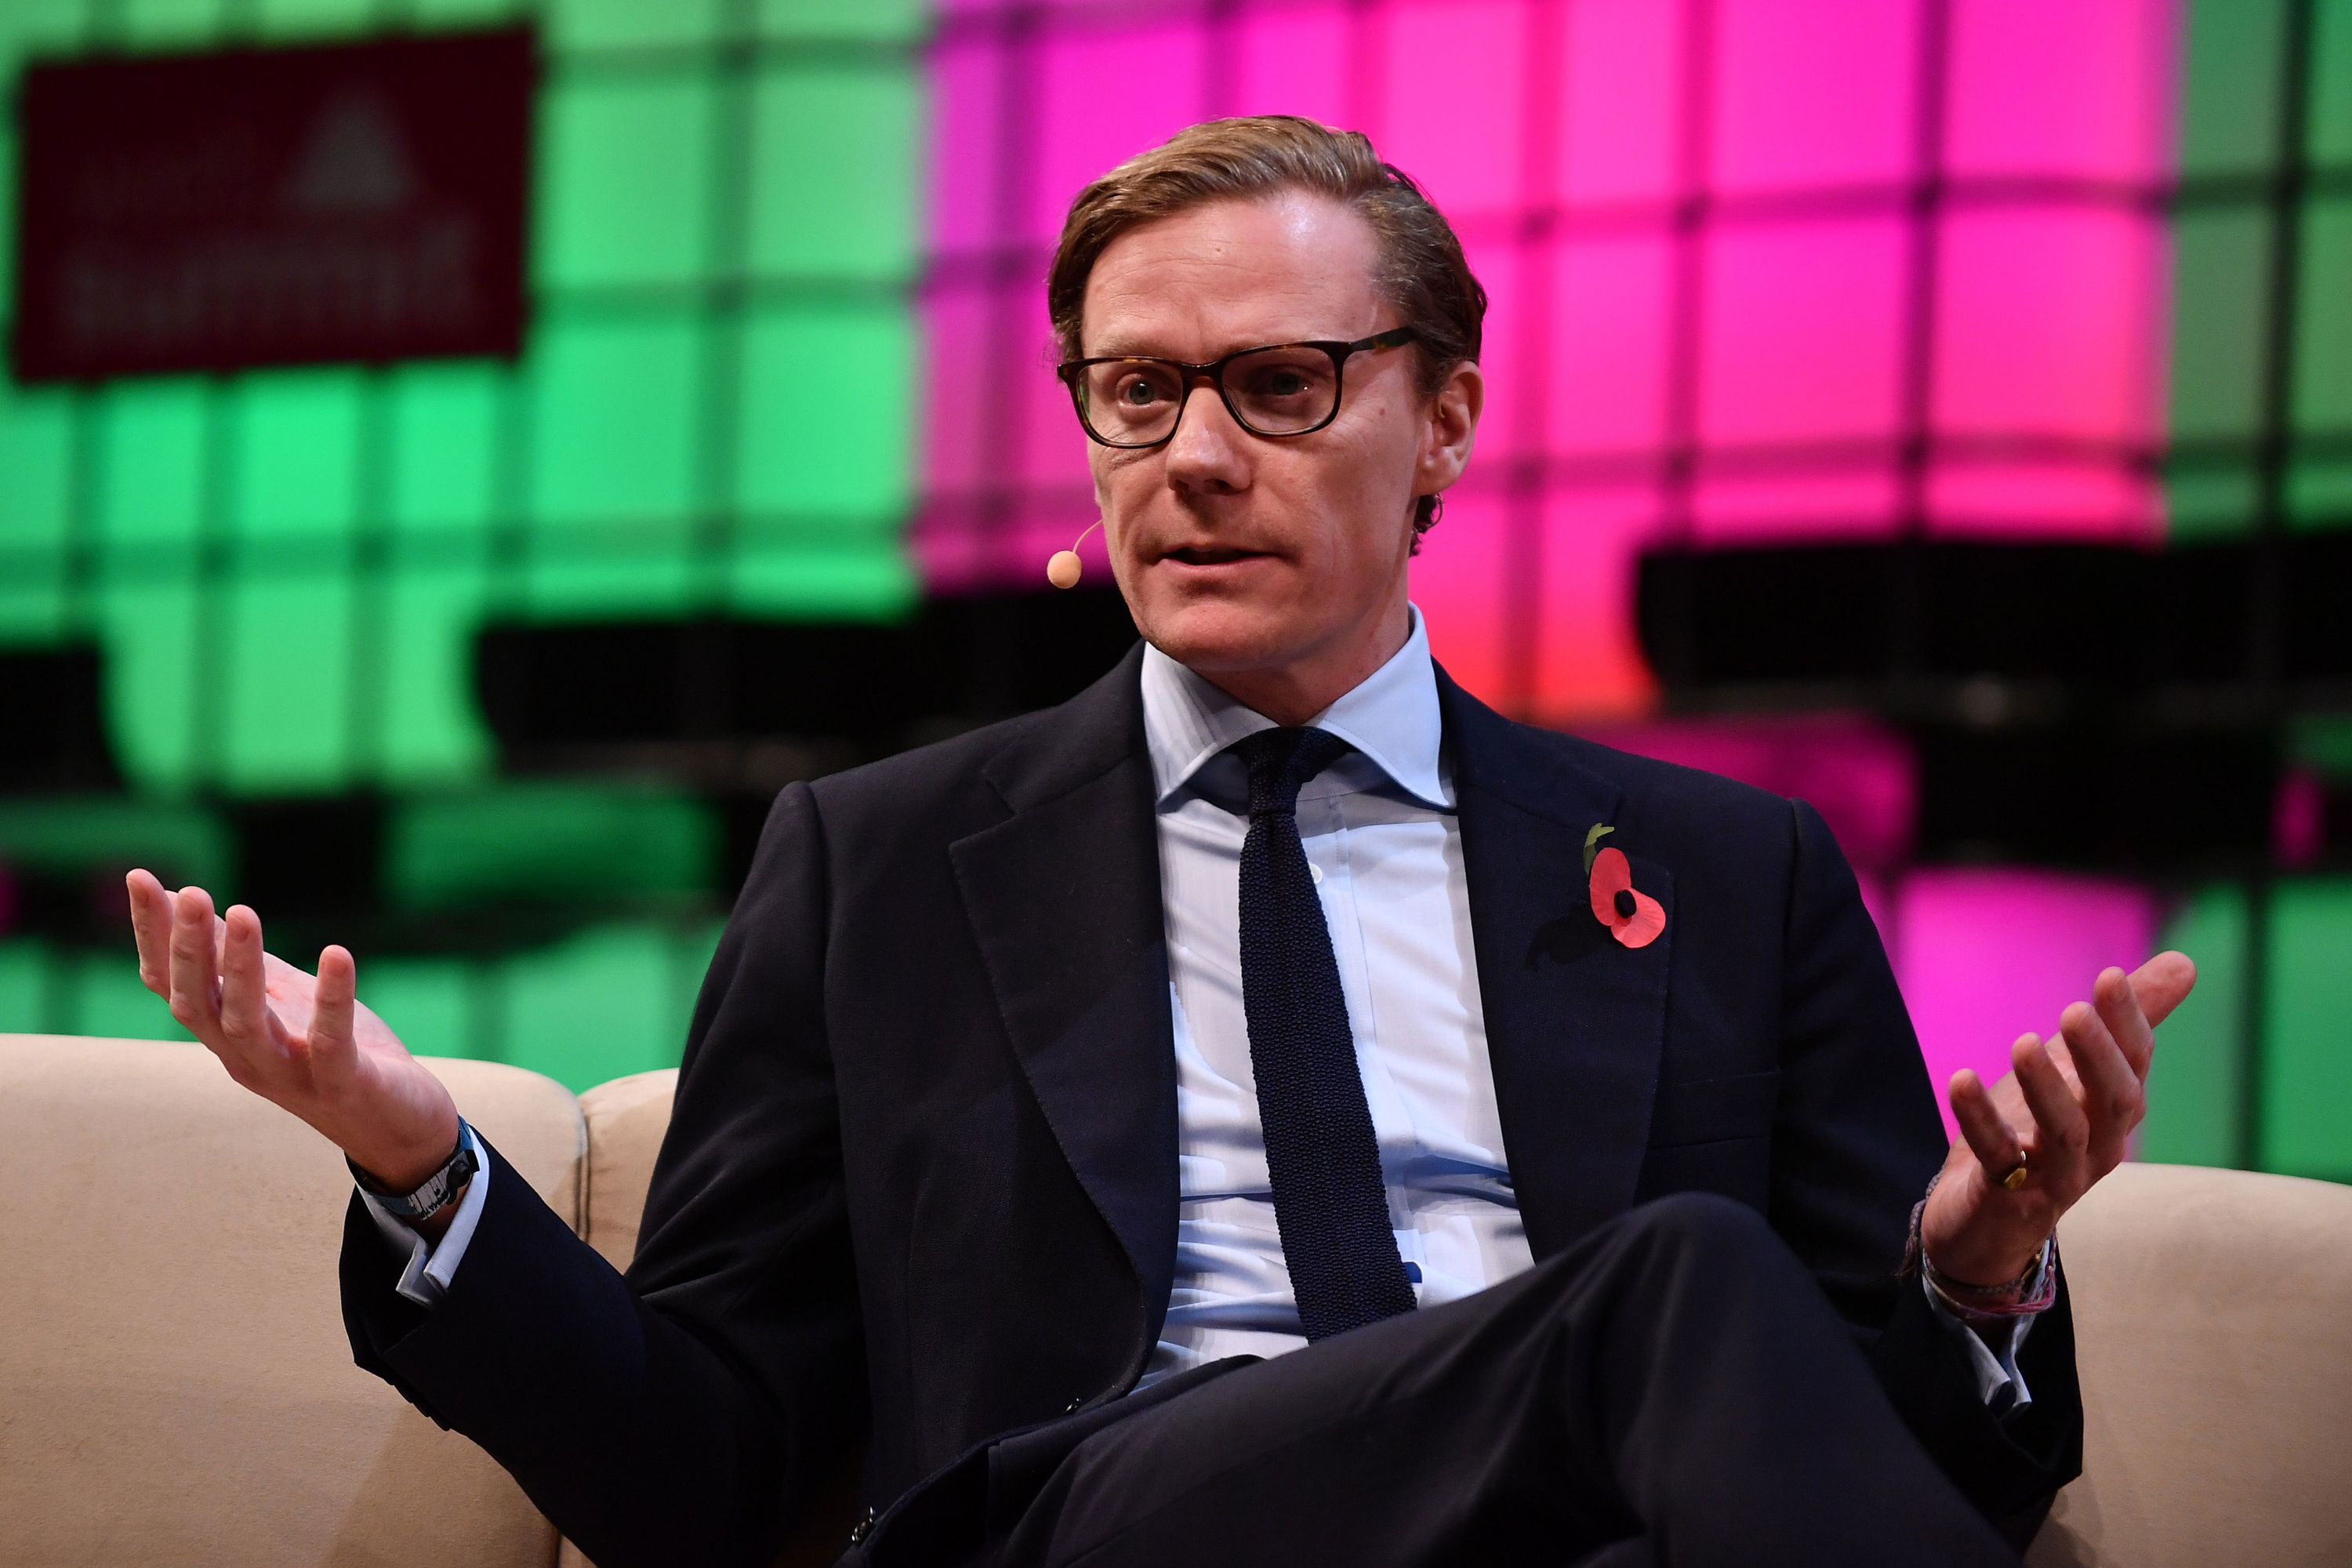 Cambridge Analytica founder Alexander Nix backs out from Cannes panel amid protest